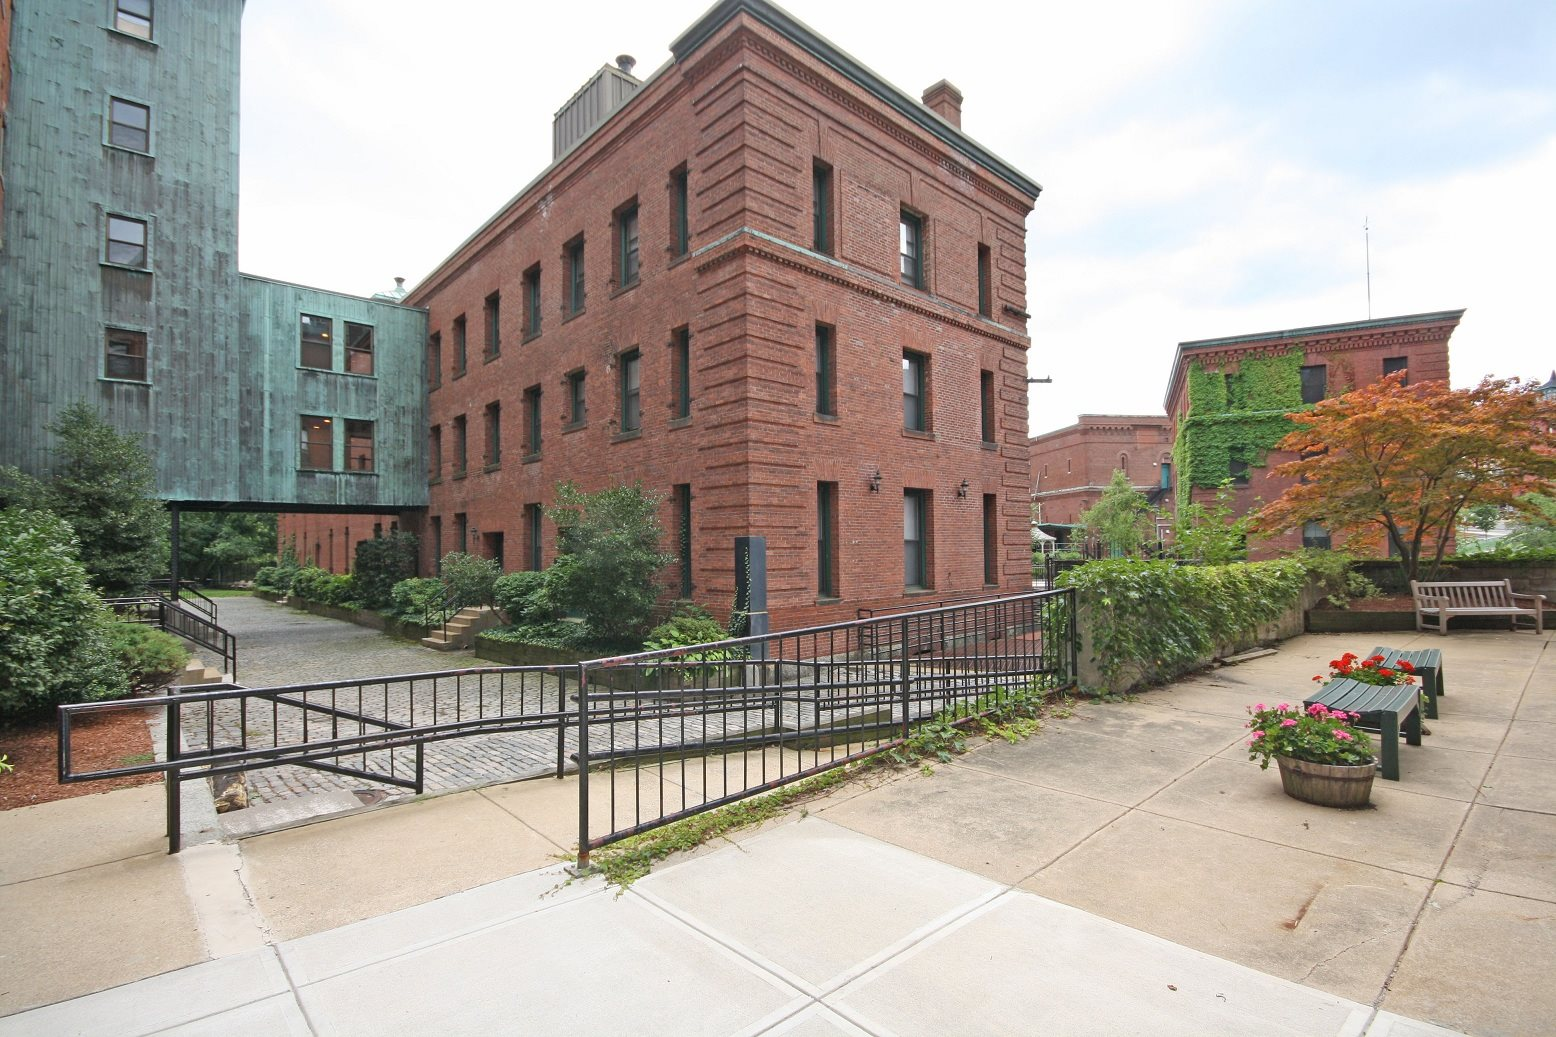 Baker chocolate factory apartments in boston ma for 2 bedroom apartments in dorchester ma